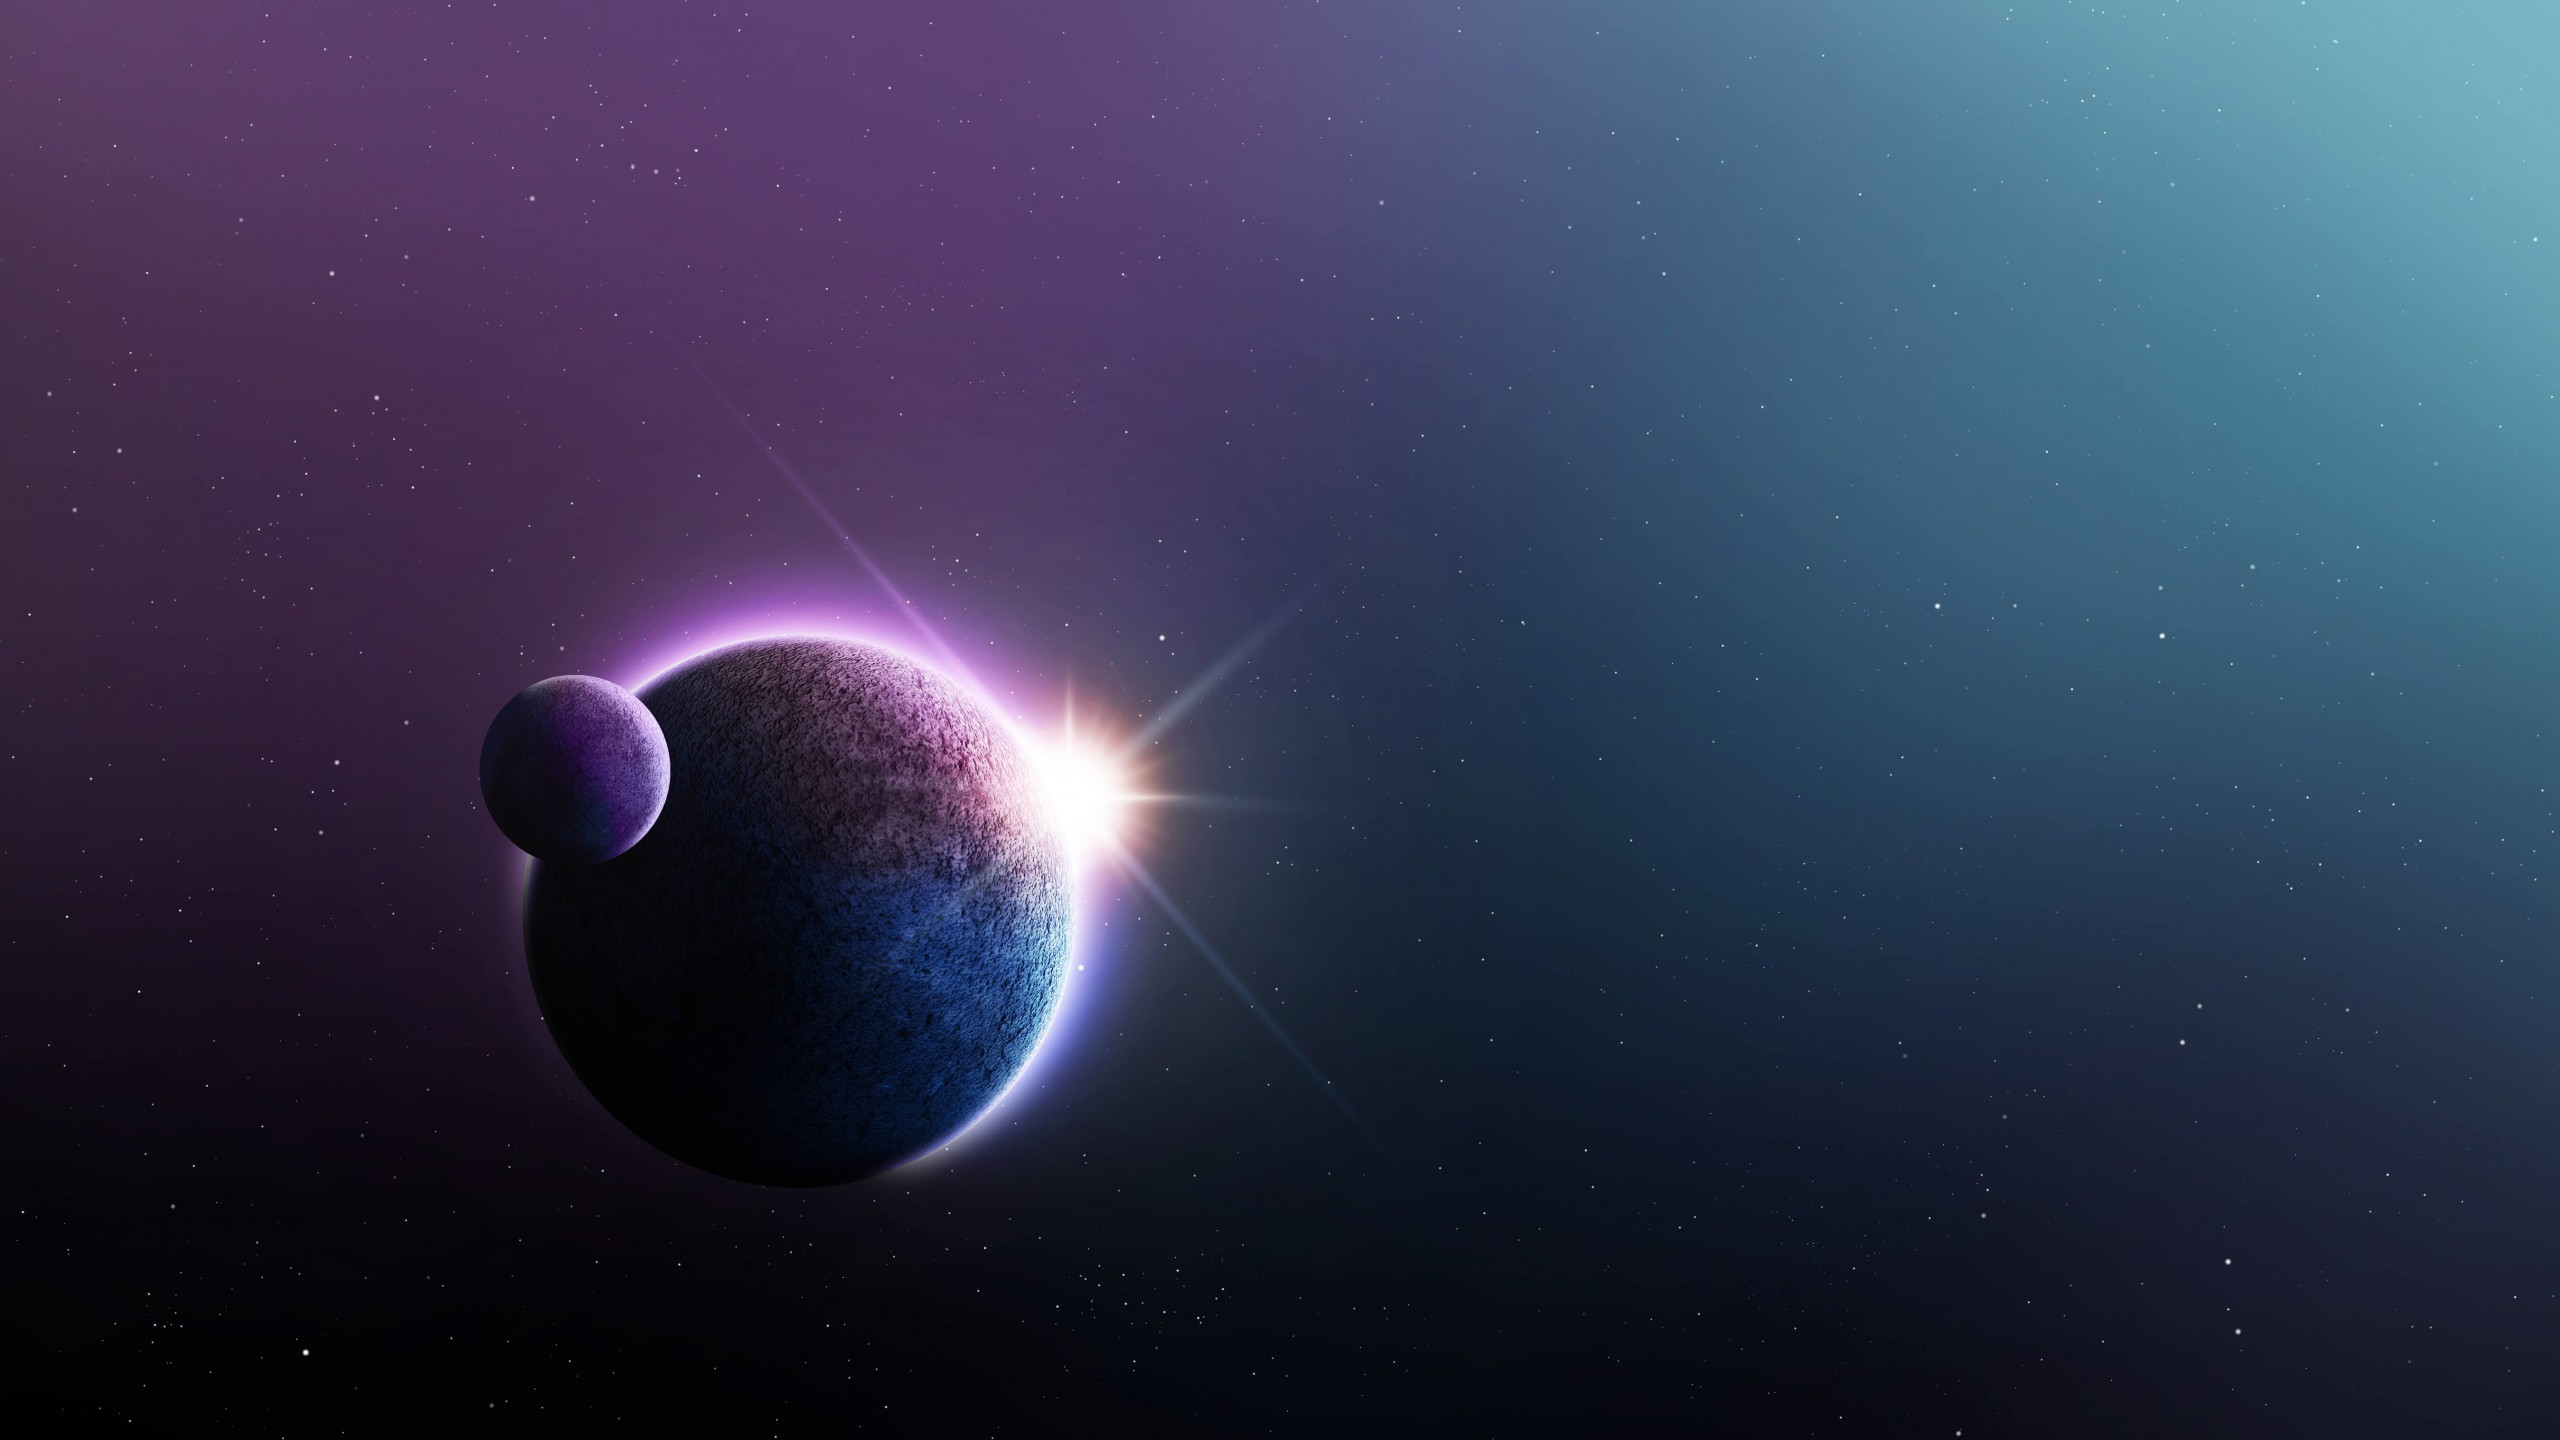 Far-Off Planets Wallpaper for Social Media YouTube Channel Art